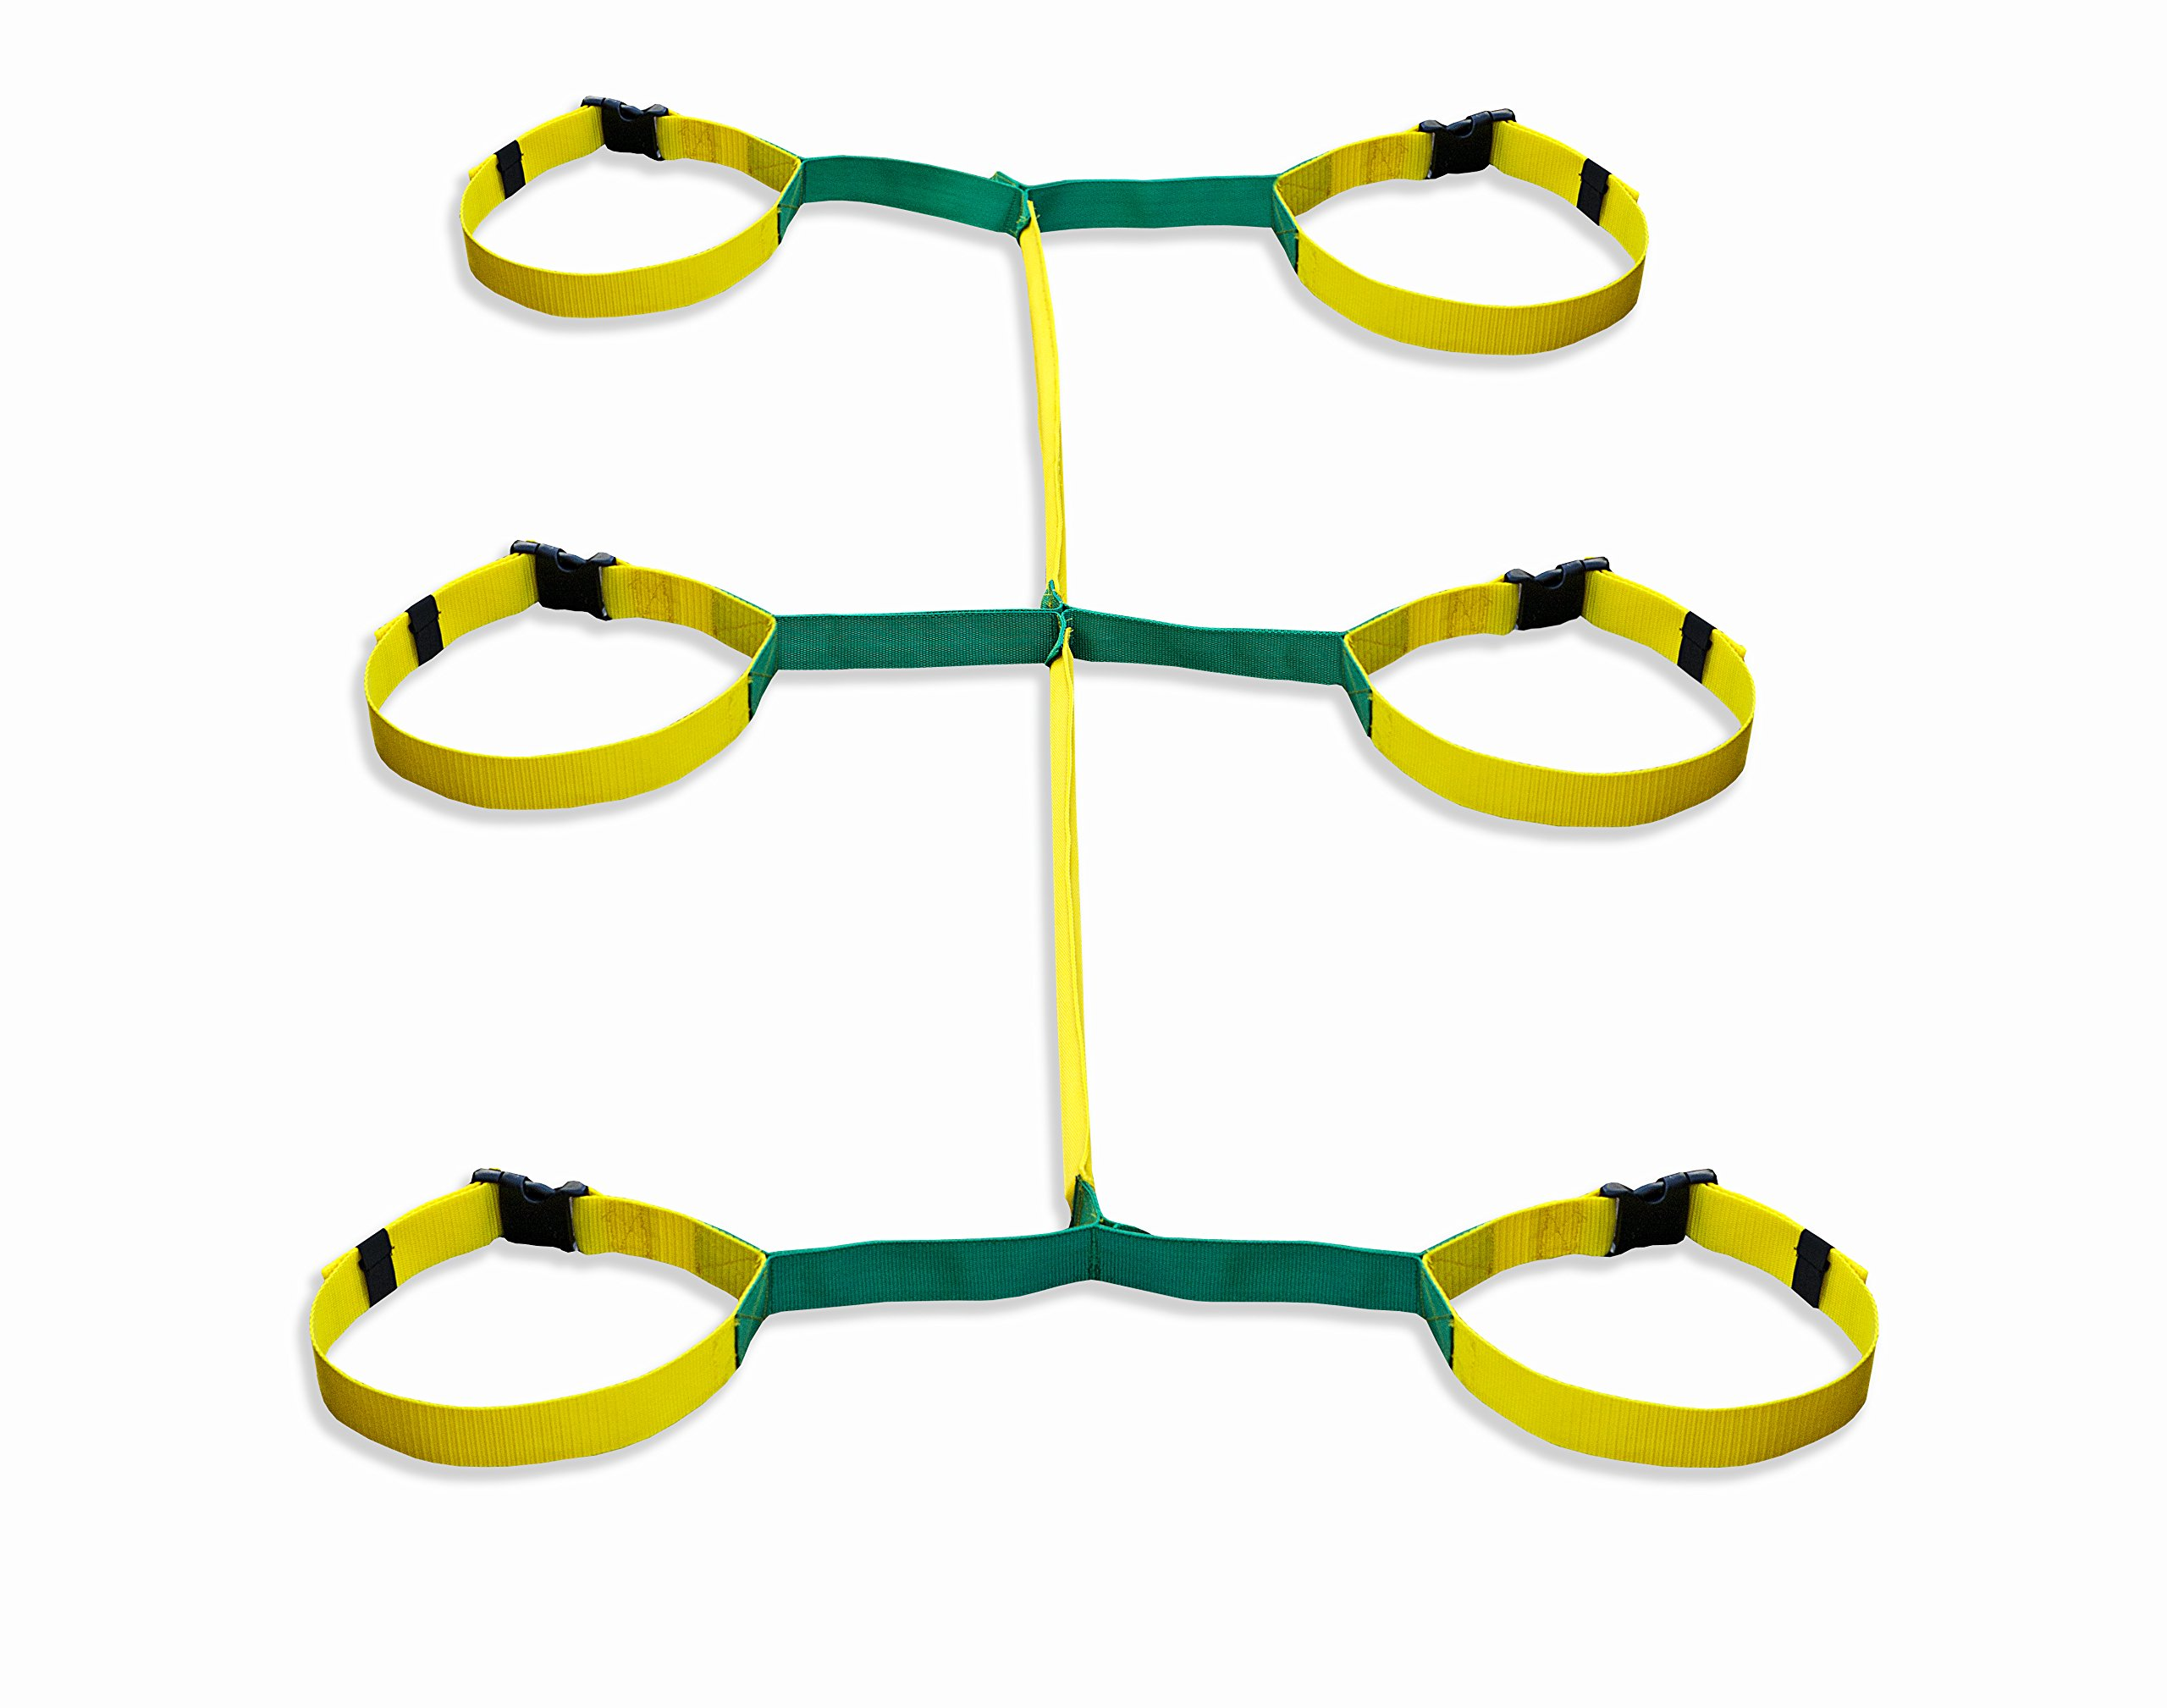 Walkodile Safety Web (6 Child), Childrens Walking Rope, Daycare Walking Leash. Also Includes Free Learning Games for Walks Guide